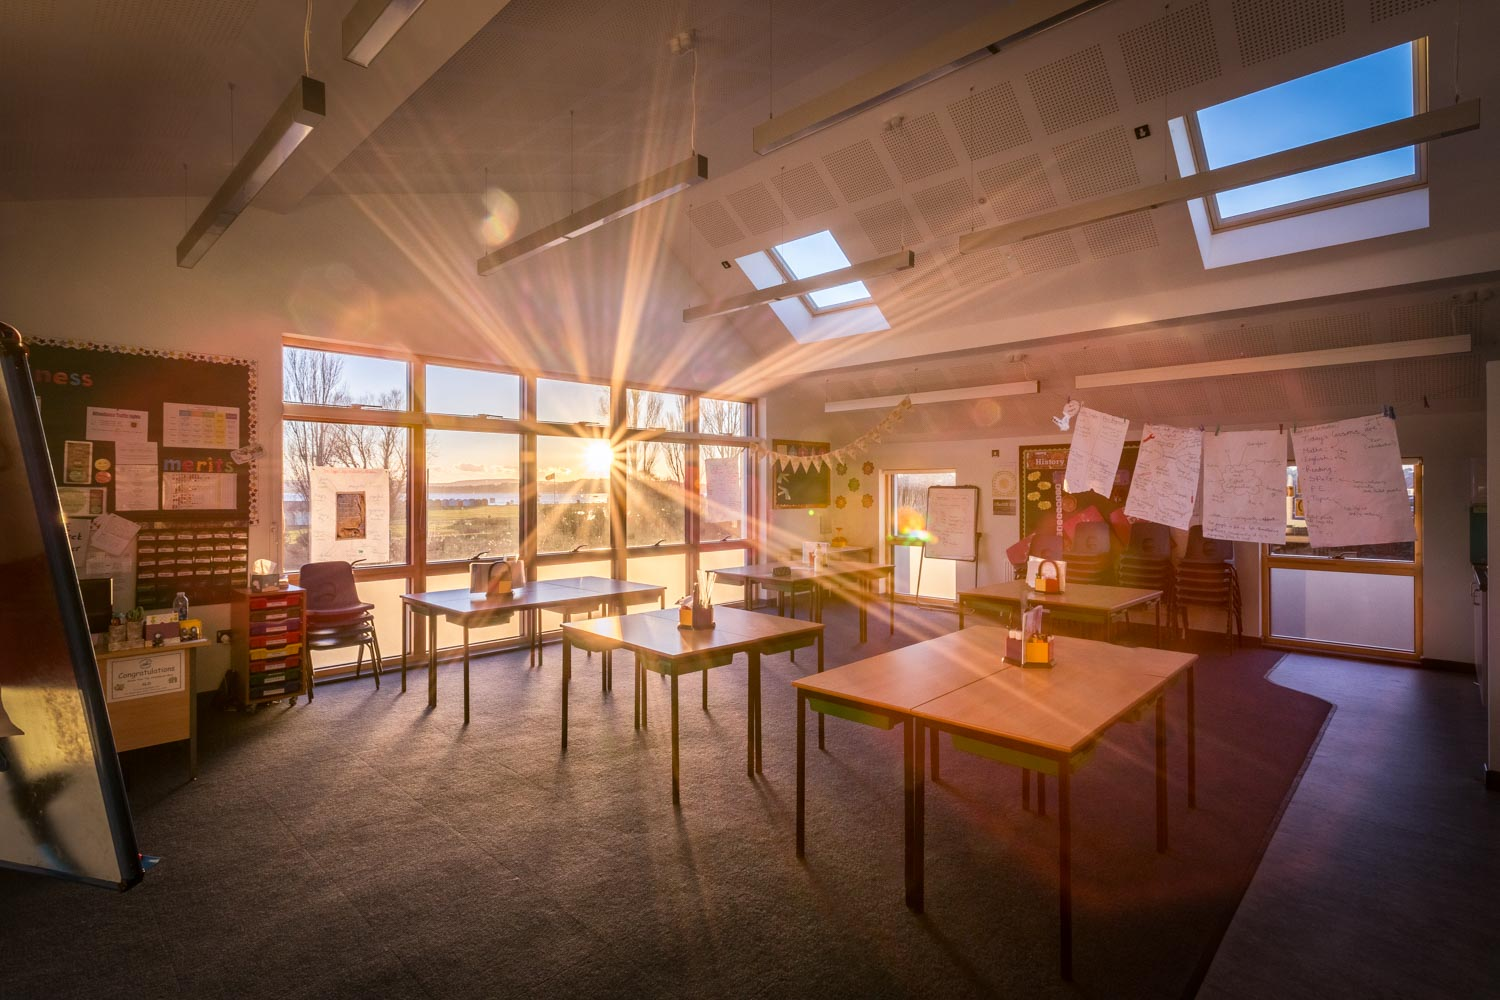 Clasroom in Poole by Rick McEvoy ABIPP Architectural Photographer in Dorset